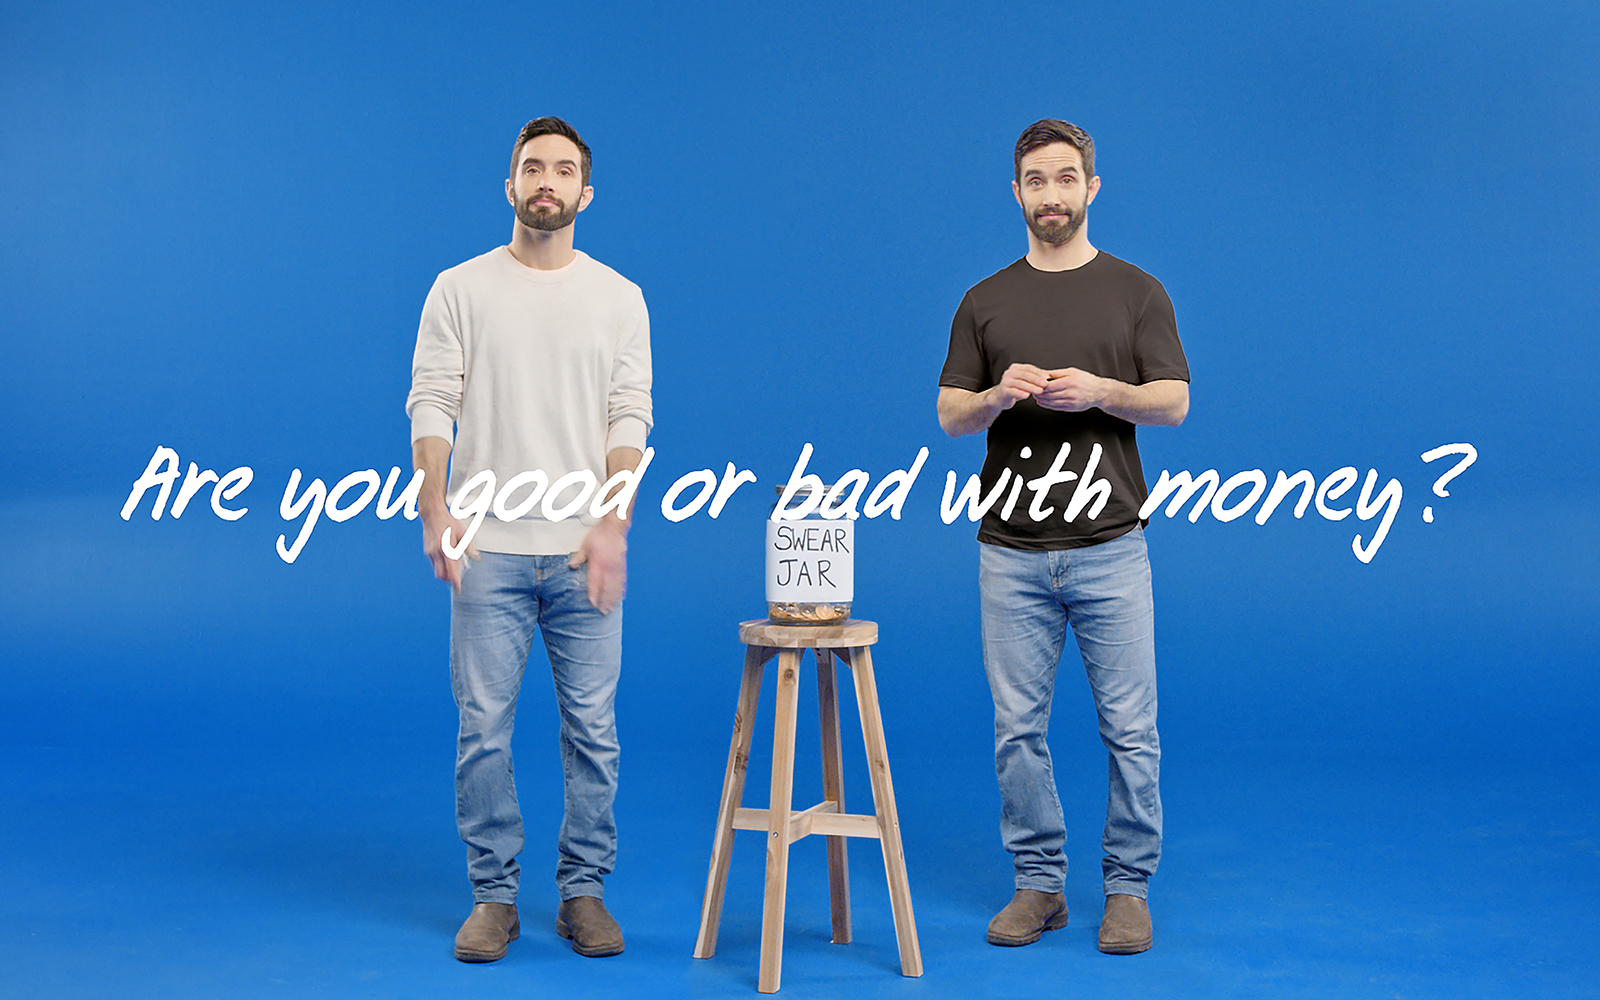 A young bearded man wearing a white sweater standing with the same bearded man wearing a black sweater, with a stool in between them. On the stool is a swear jar.